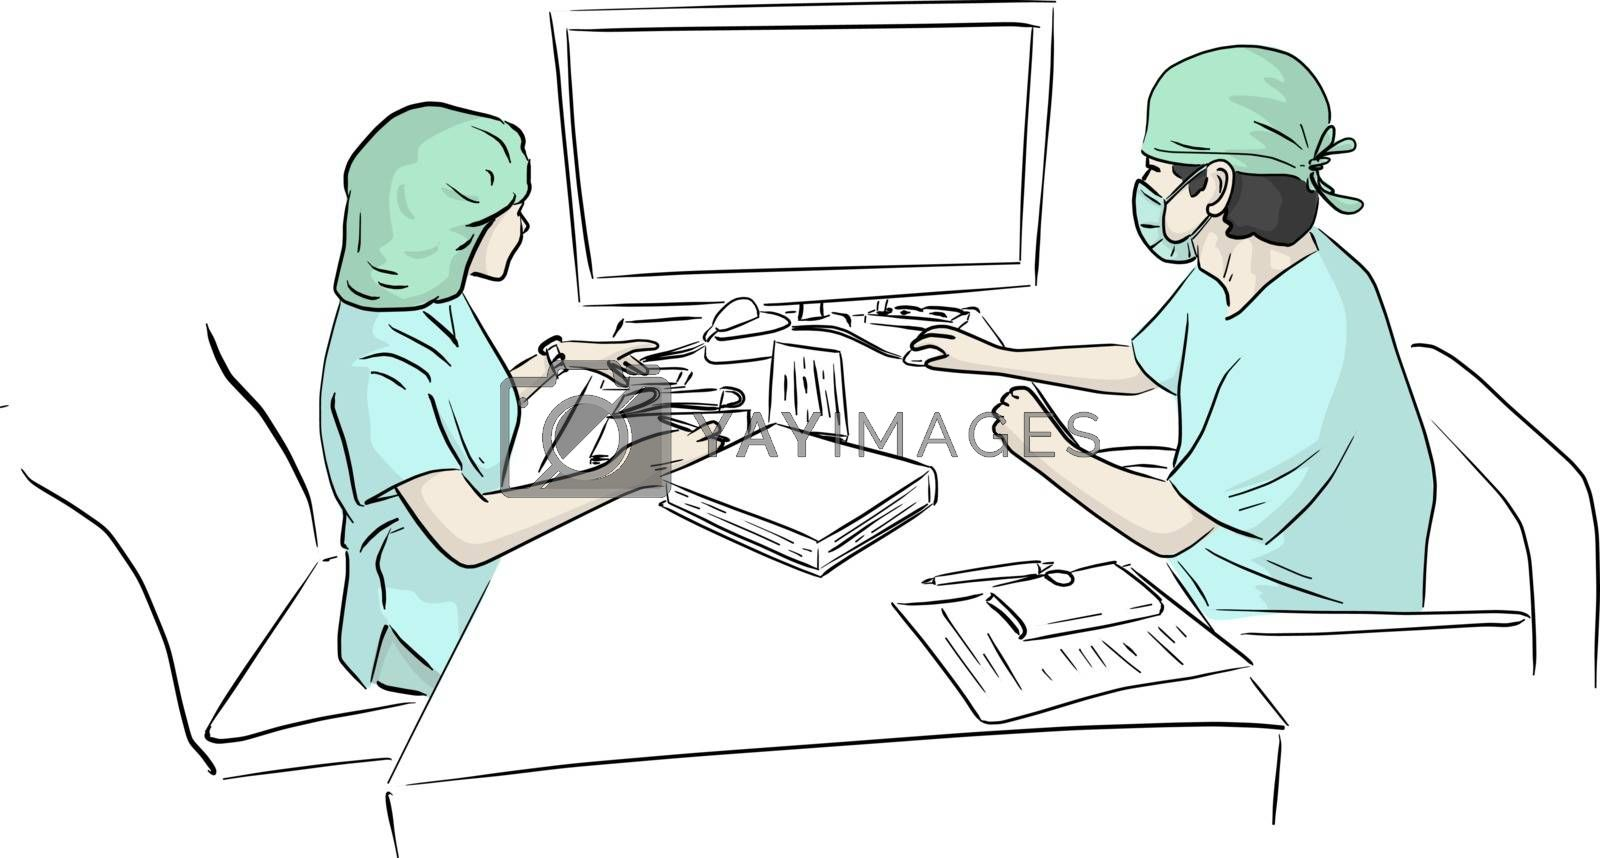 two doctors team working at computer desk in hospital in case of Covid-19 virus vector illustration sketch doodle hand drawn isolated on white background